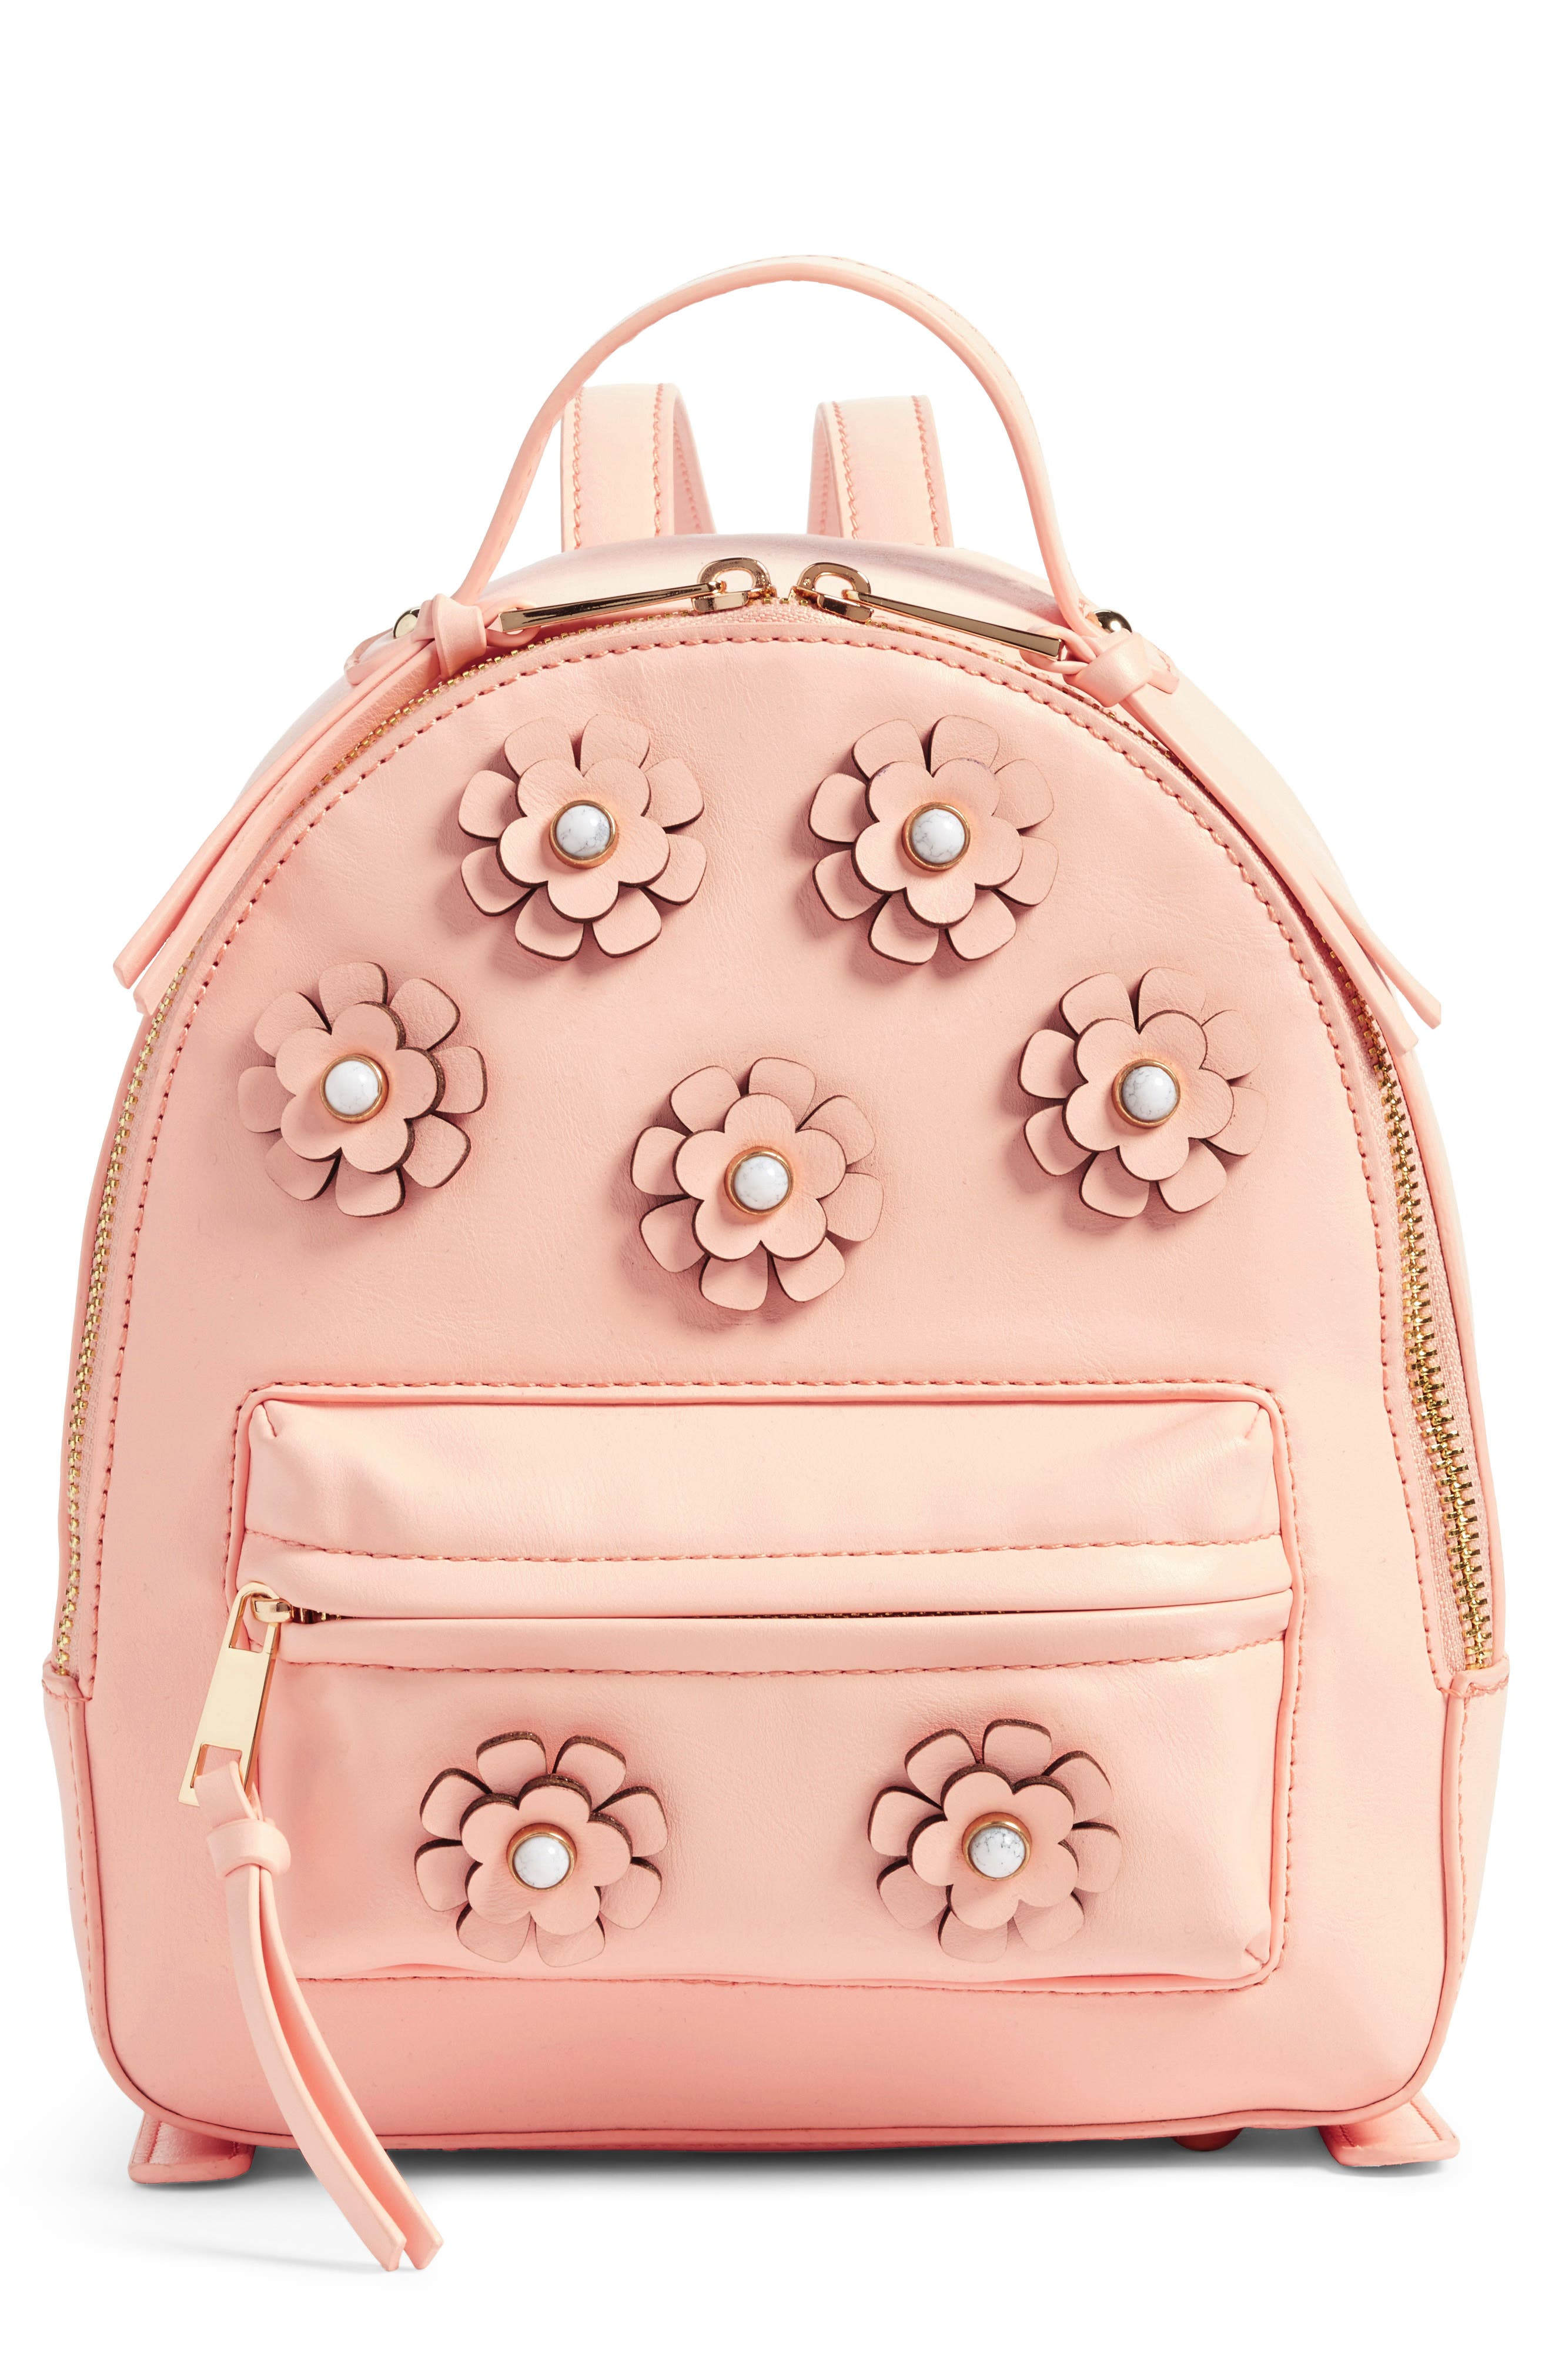 Payette Floral Backpack,                             Main thumbnail 1, color,                             680